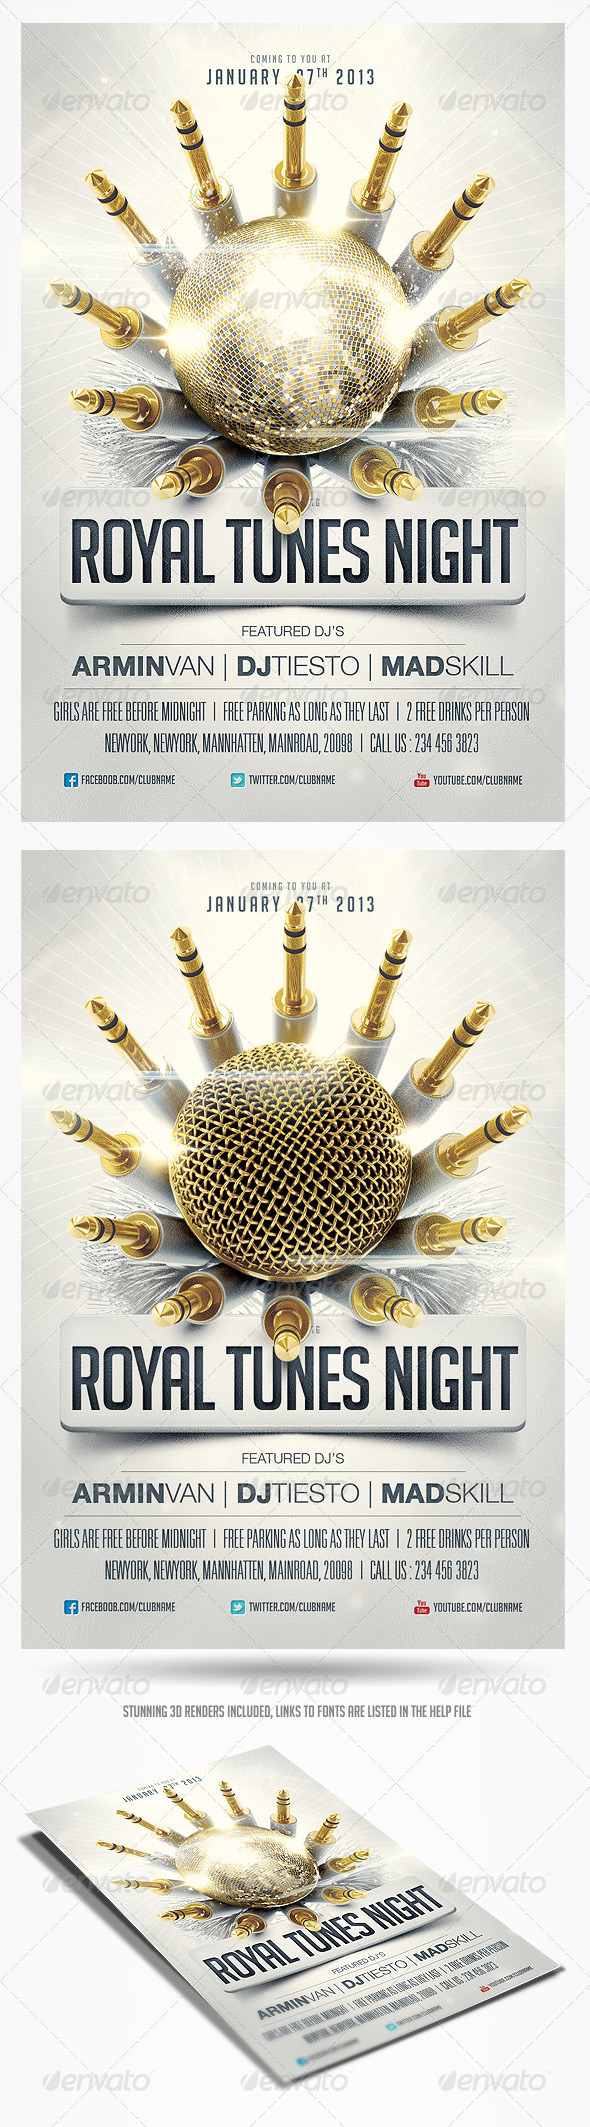 Royal Tunes Flyer Template - Clubs & Parties Events